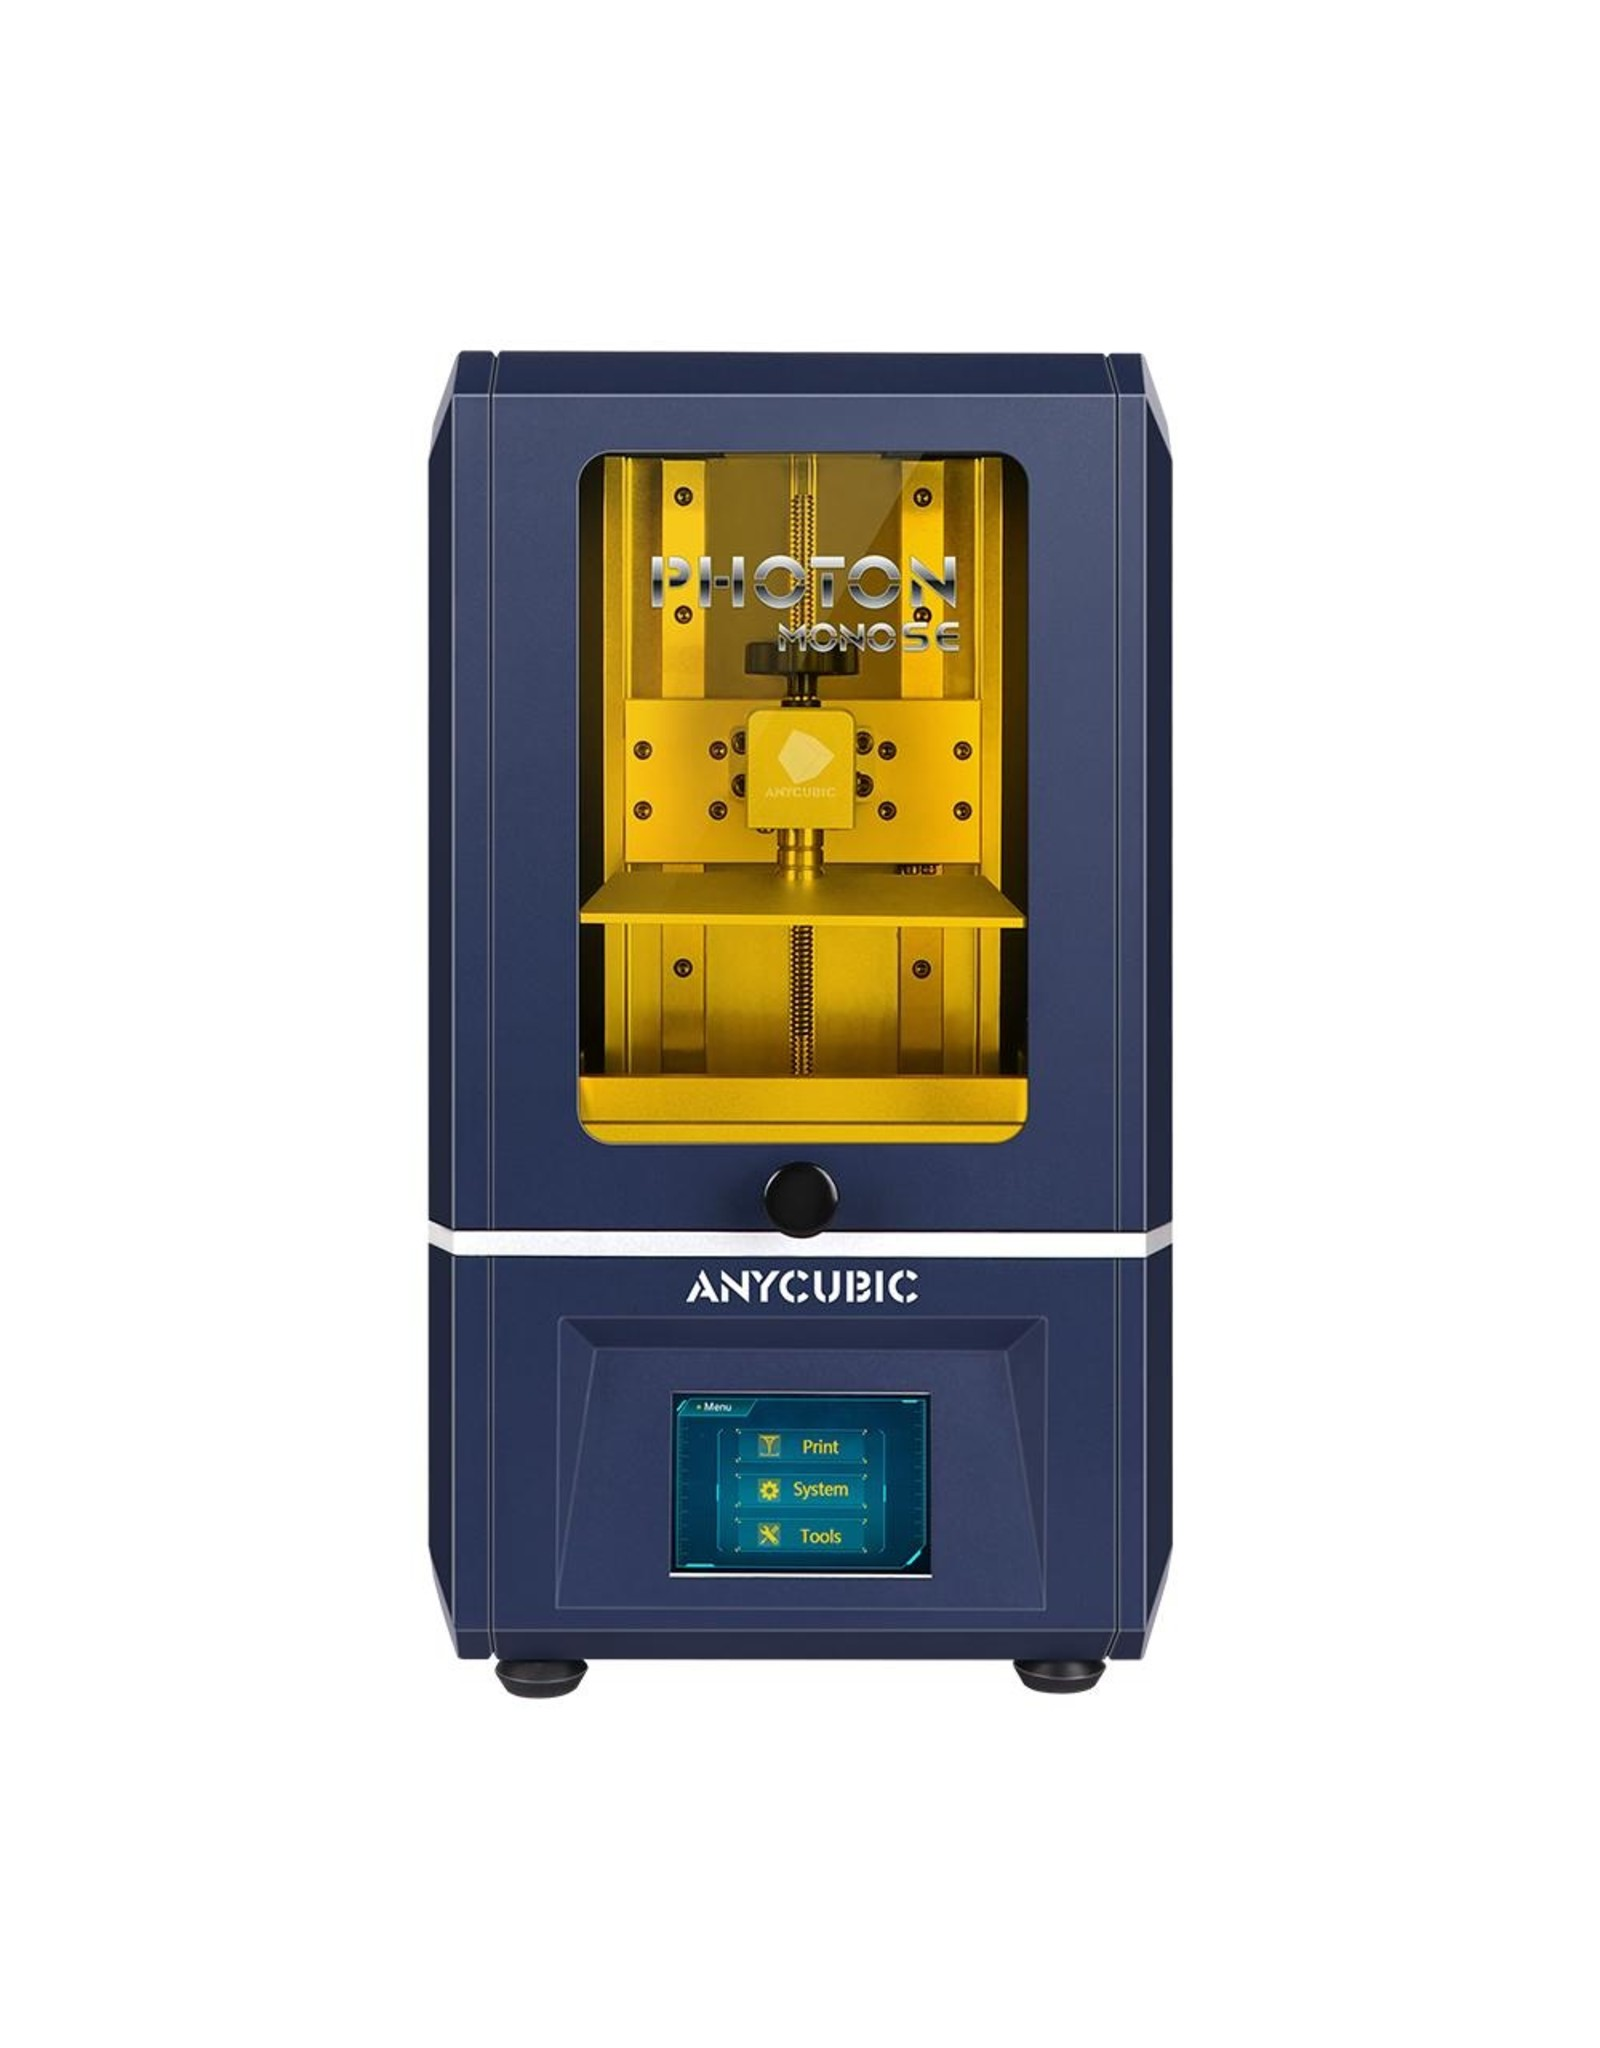 Anycubic Anycubic Photon Mono SE